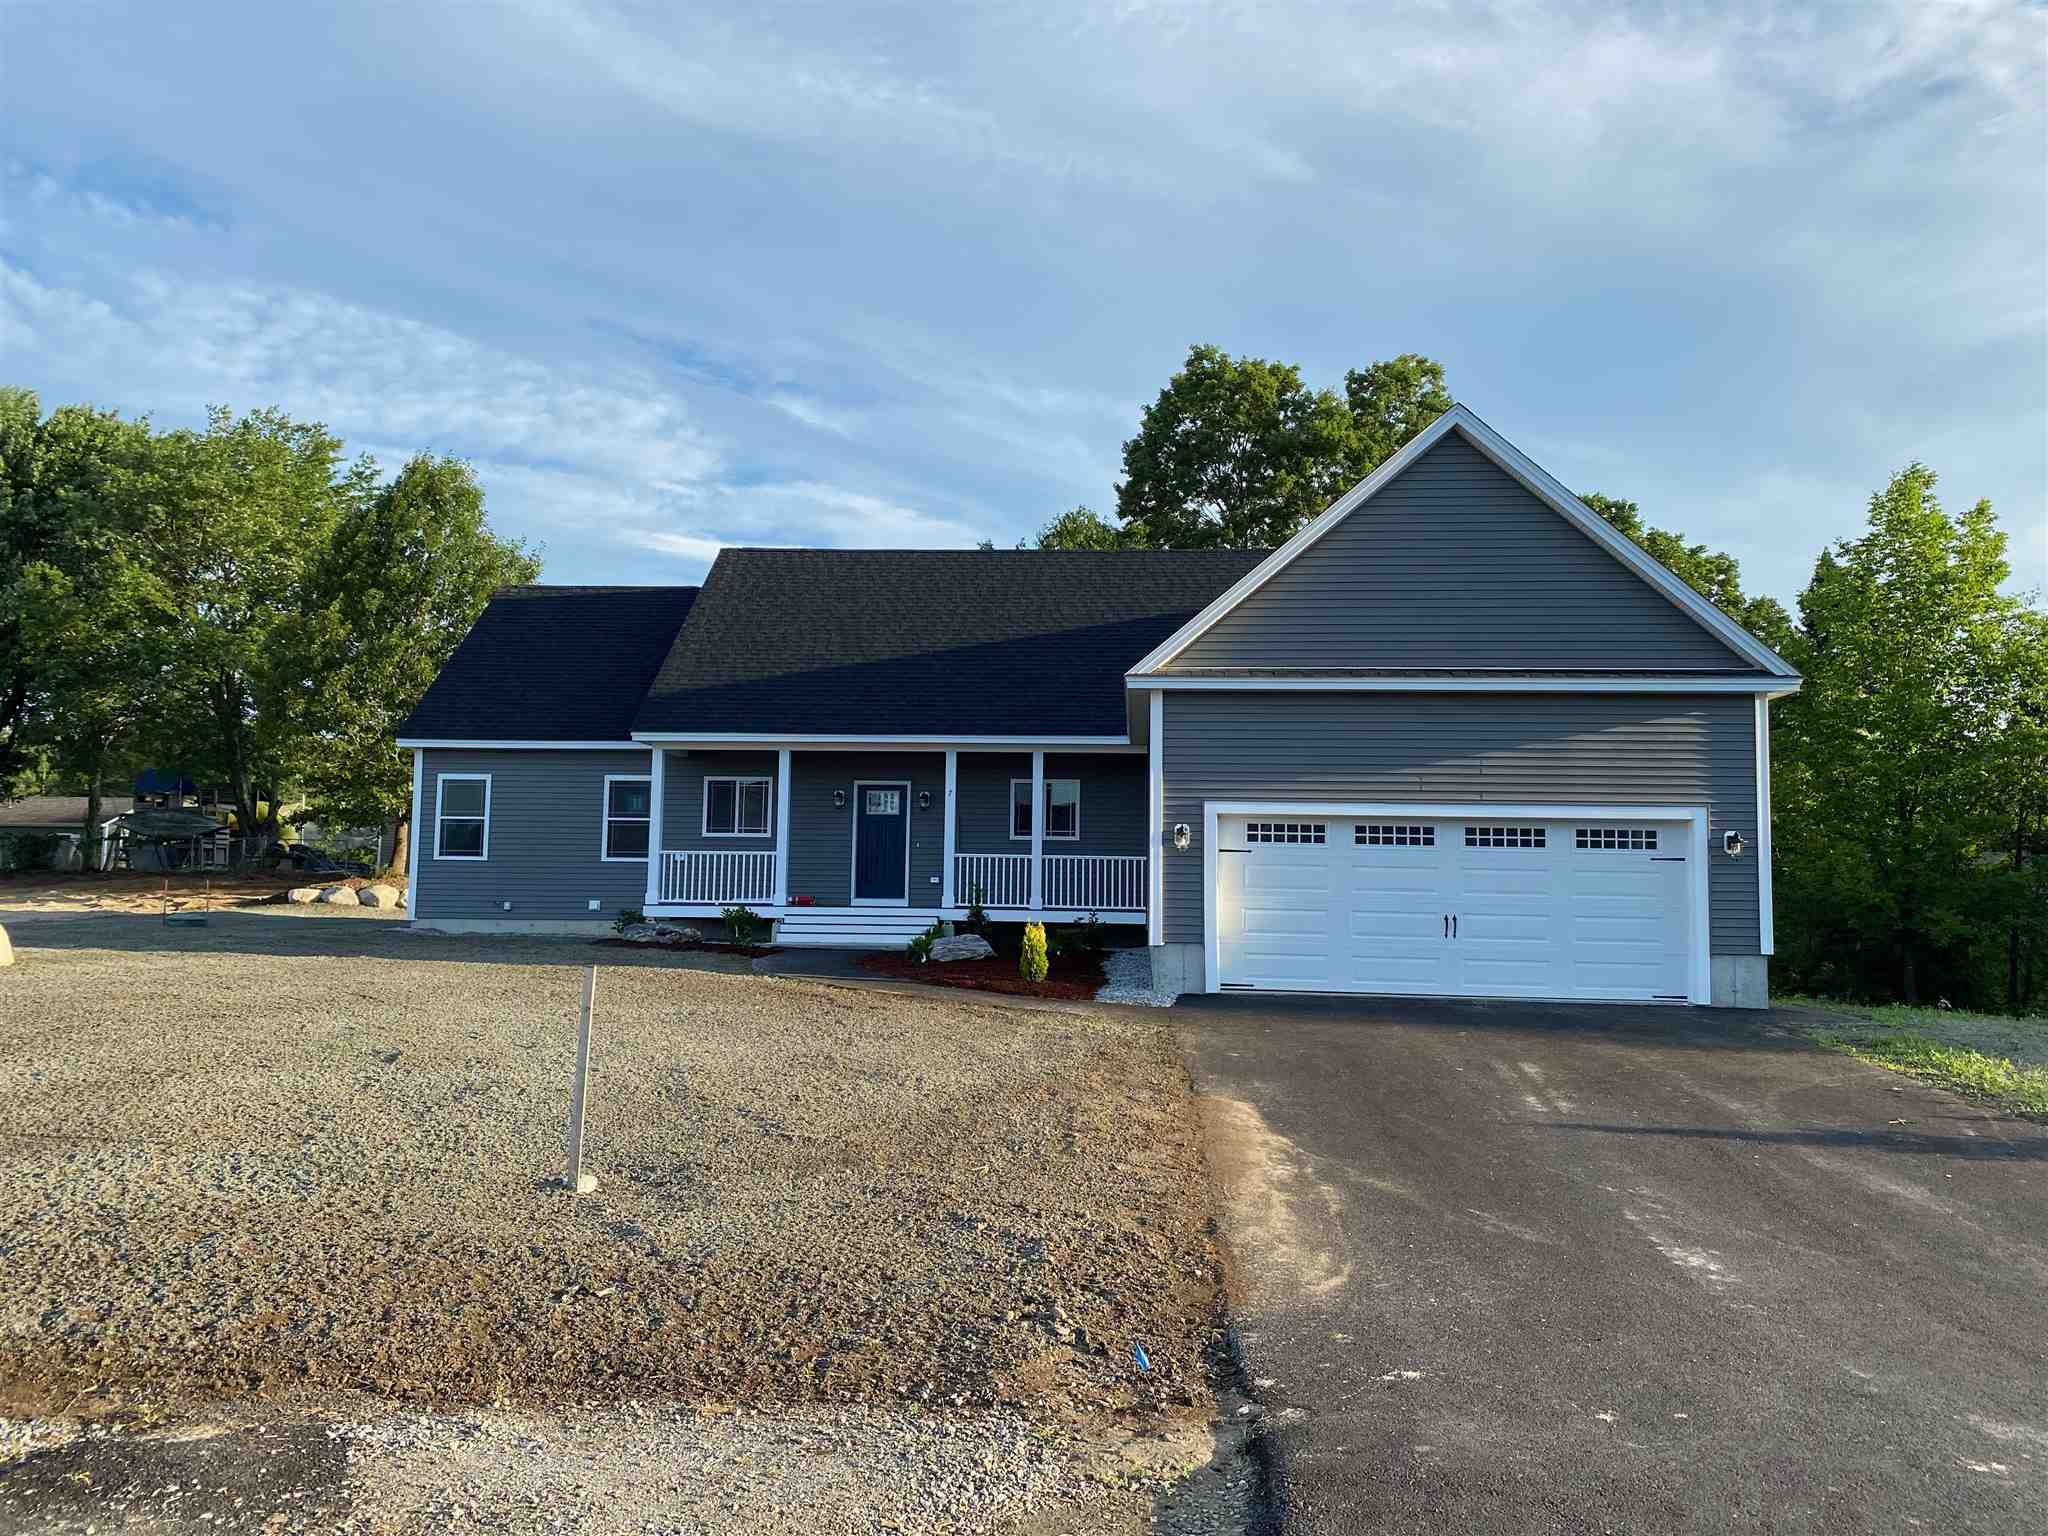 MLS 4770228: 7 Curtis Commons Way-Unit Lot 11, Milford NH